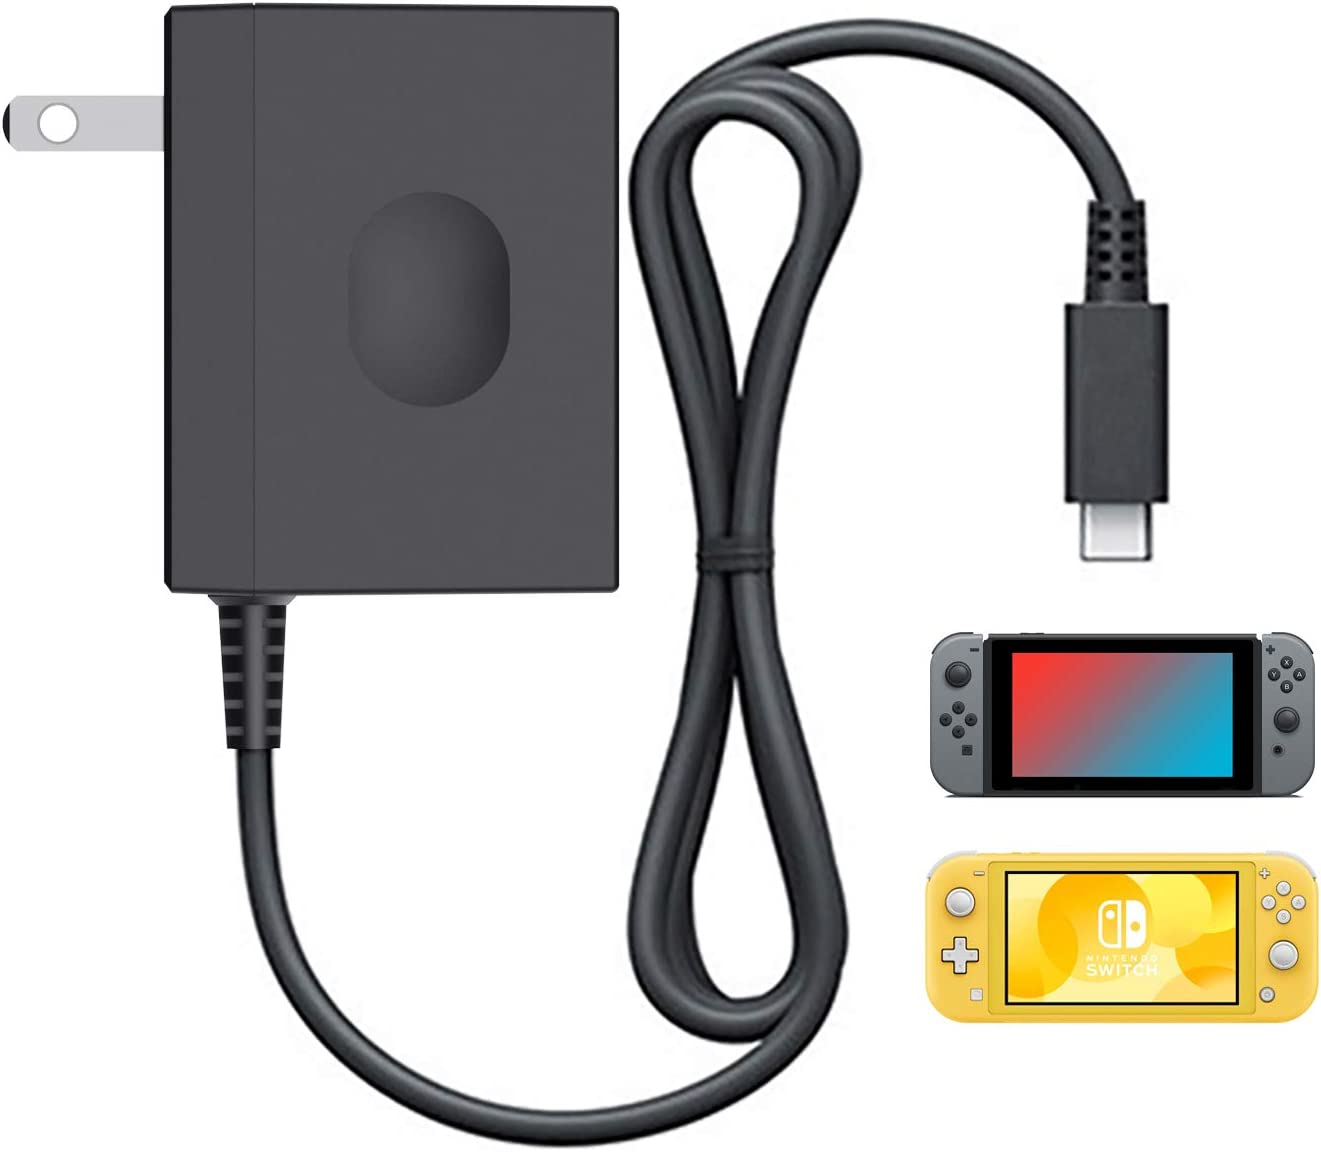 YCCSKY - Cargador para Nintendo Switch y Nintendo Switch Lite, adaptador de CA de repuesto para Nintendo Switch y Switch Lite (compatible con modo de TV), color negro: Amazon.es: Videojuegos